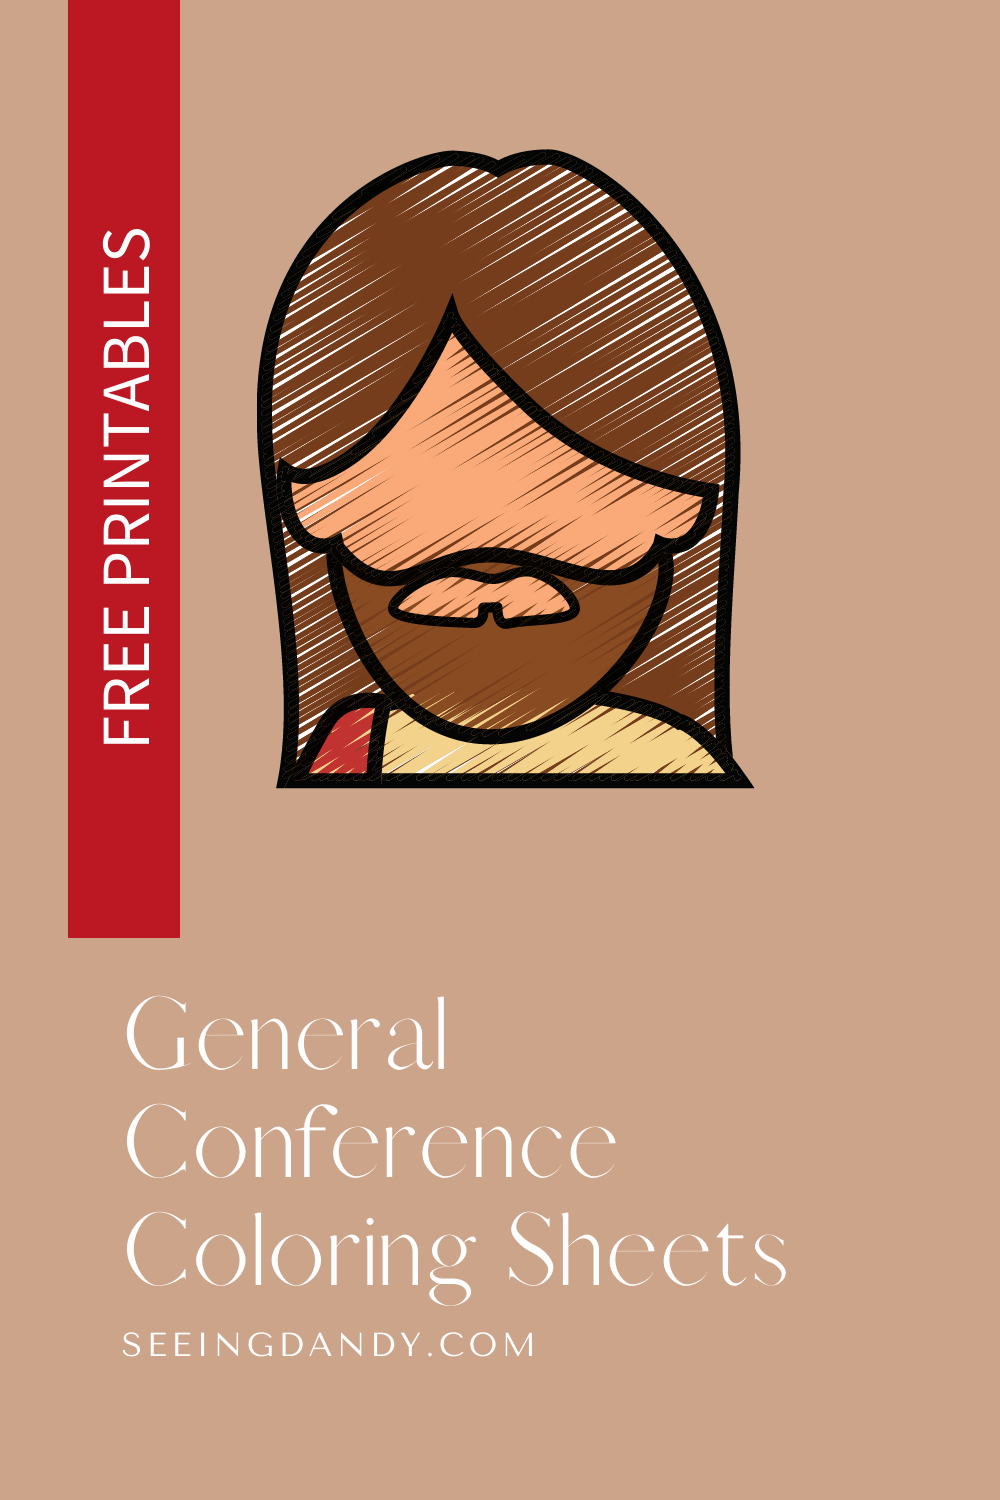 general conference coloring sheets, general conference coloring pages, free printables, diy adult coloring prints